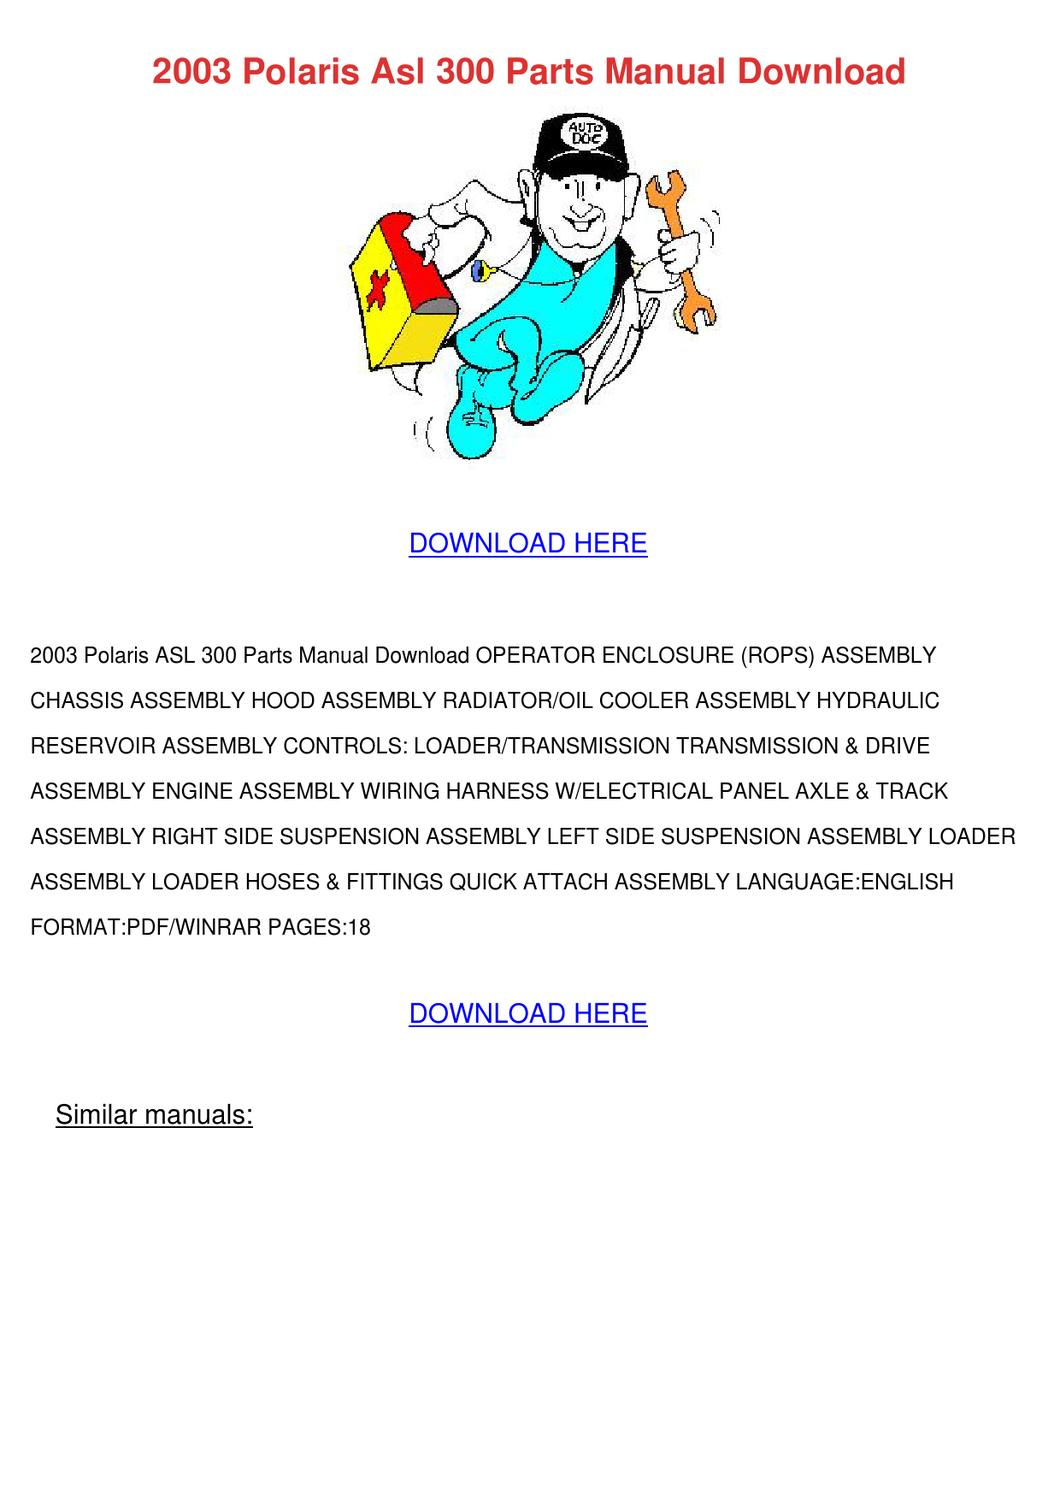 2003 Polaris Asl 300 Parts Manual Download by ChristelBrubaker - issuu